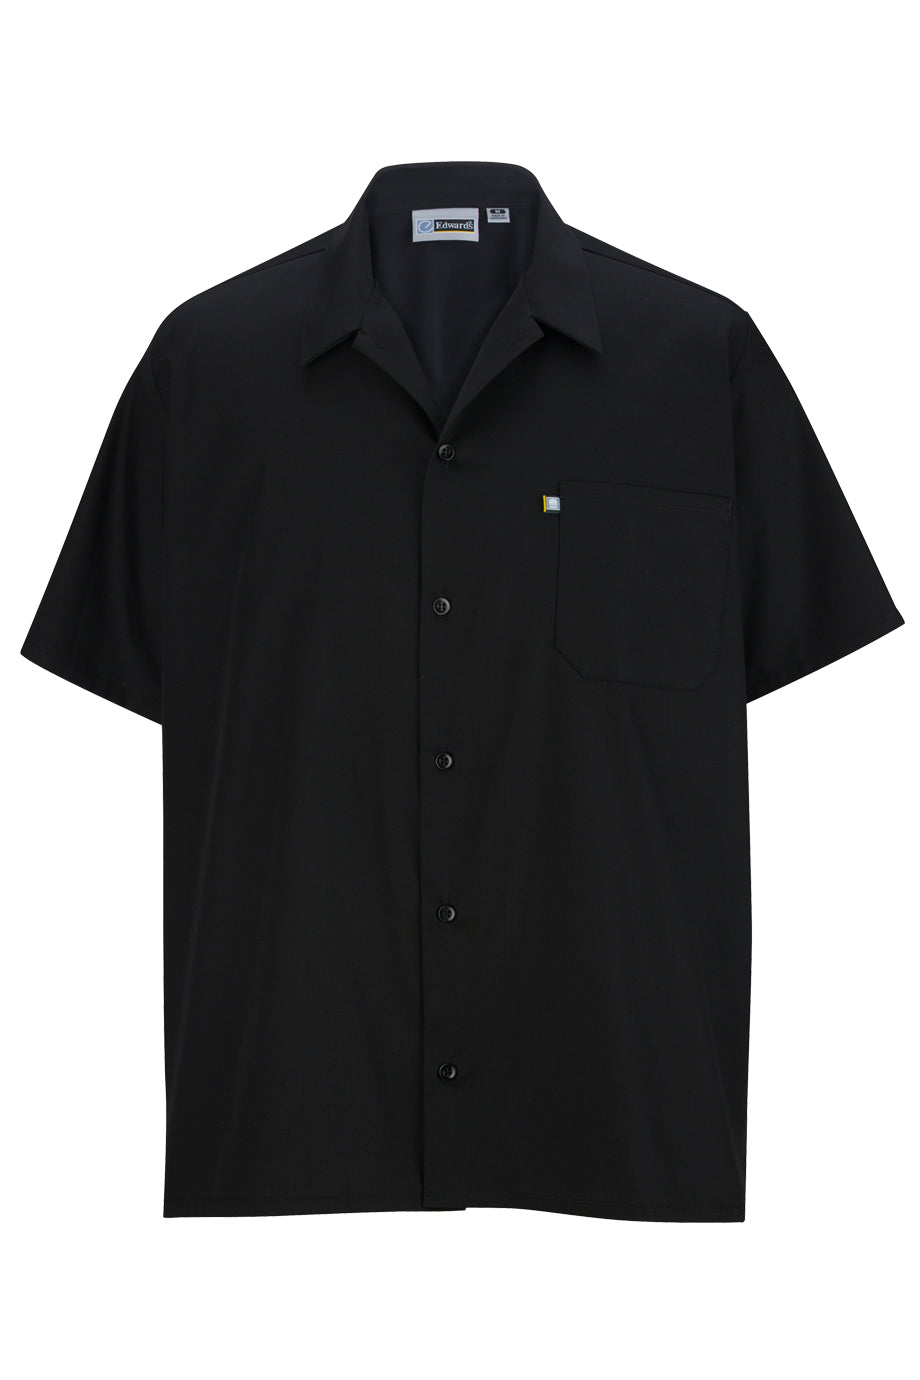 Black Edwards Button Front Shirt With Mesh Back